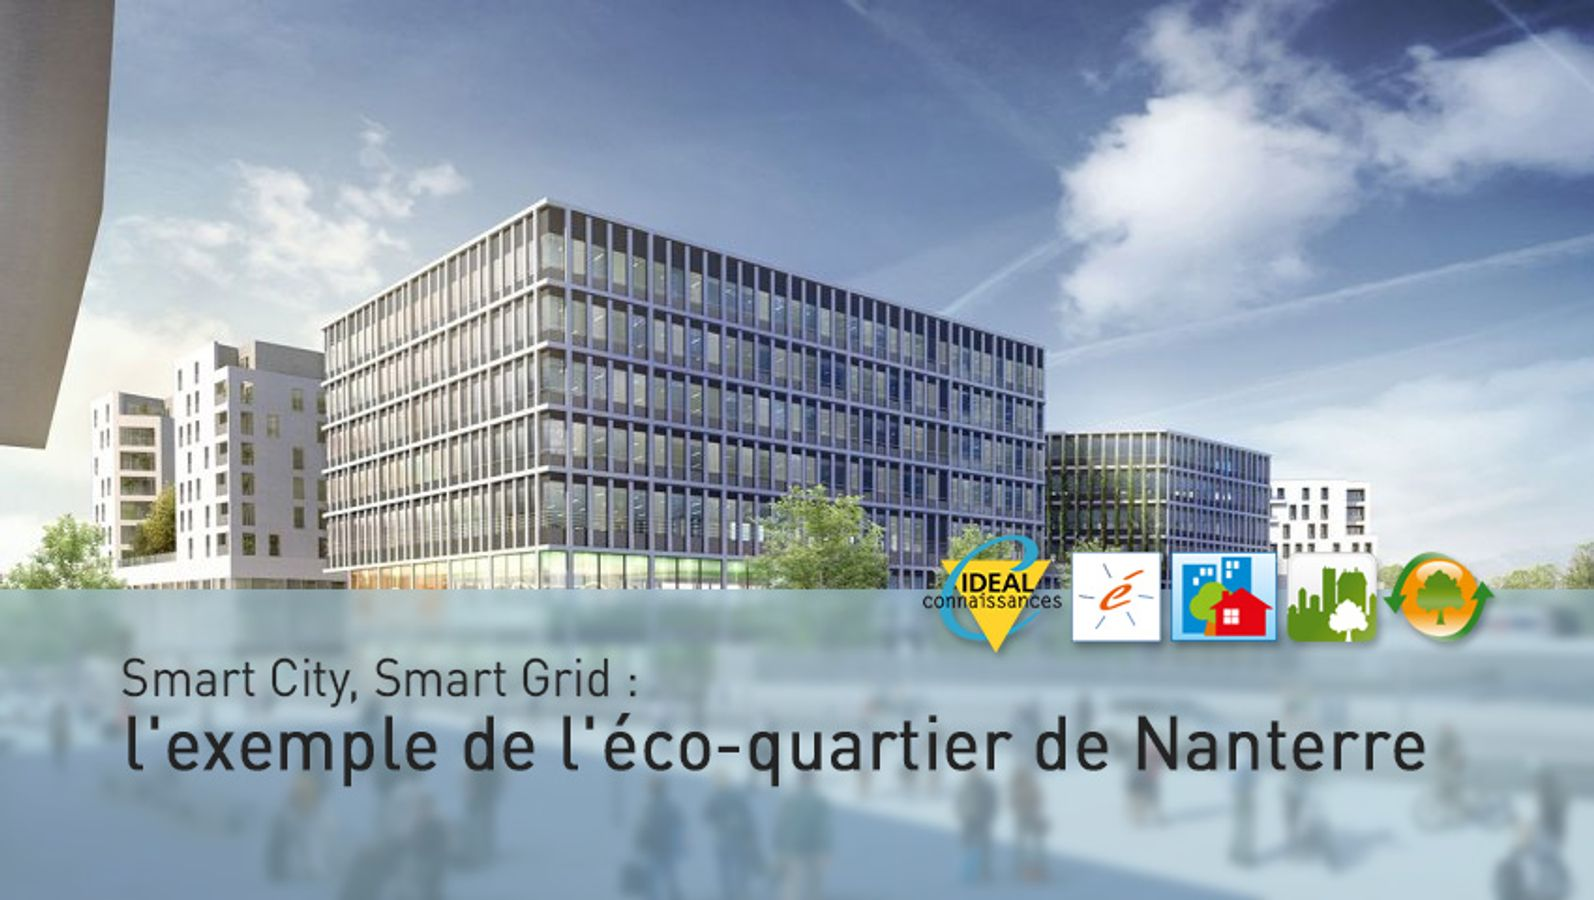 Smart City, Smart Grid : l'exemple de l'éco-quartier de Nanterre